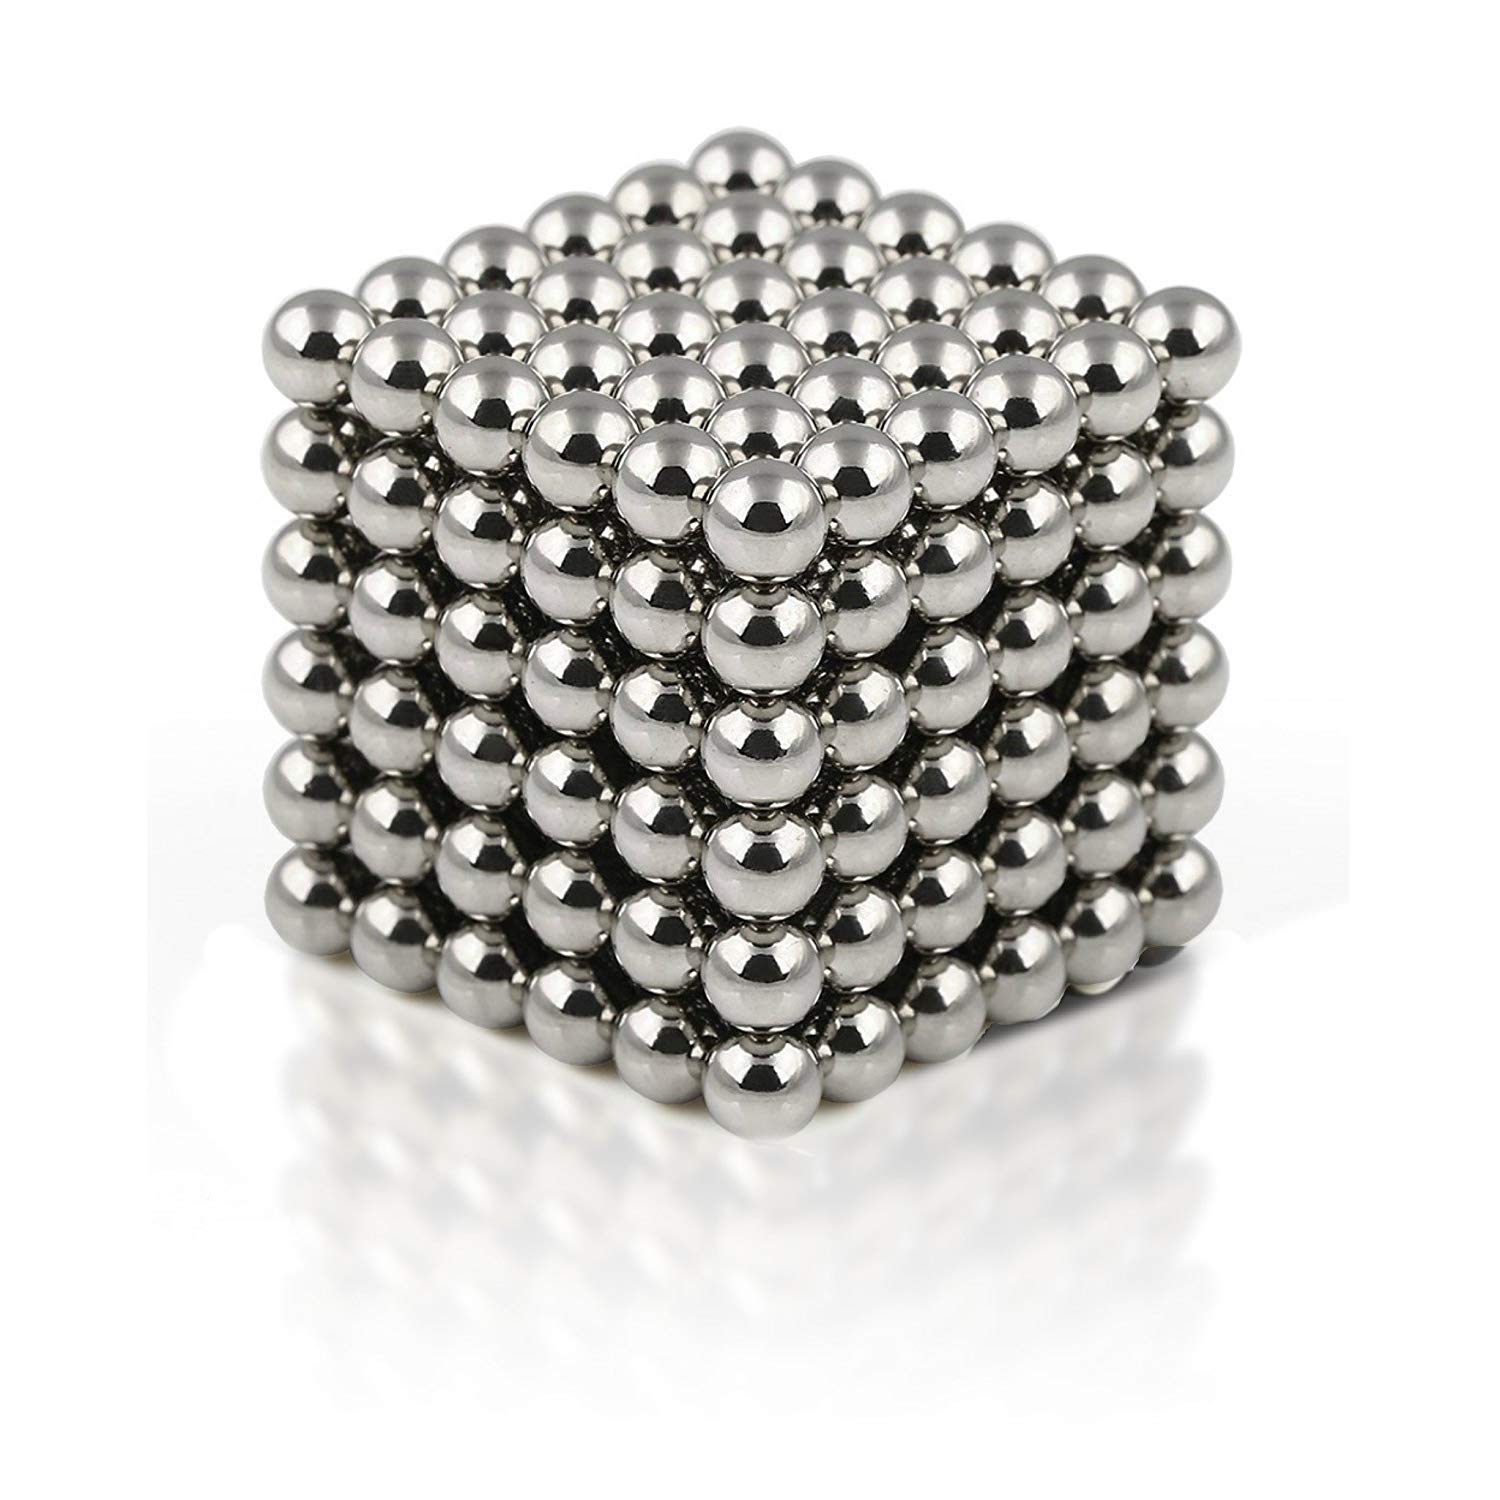 Boredom Silver truwire 5MM Magnetic Ball Set for Office Stress Relief Desk Sculpture Toy Perfect for Crafts Jewelry and Education Magnetized Fidget Cube Provides Relief for Anxiety ADHD Autism